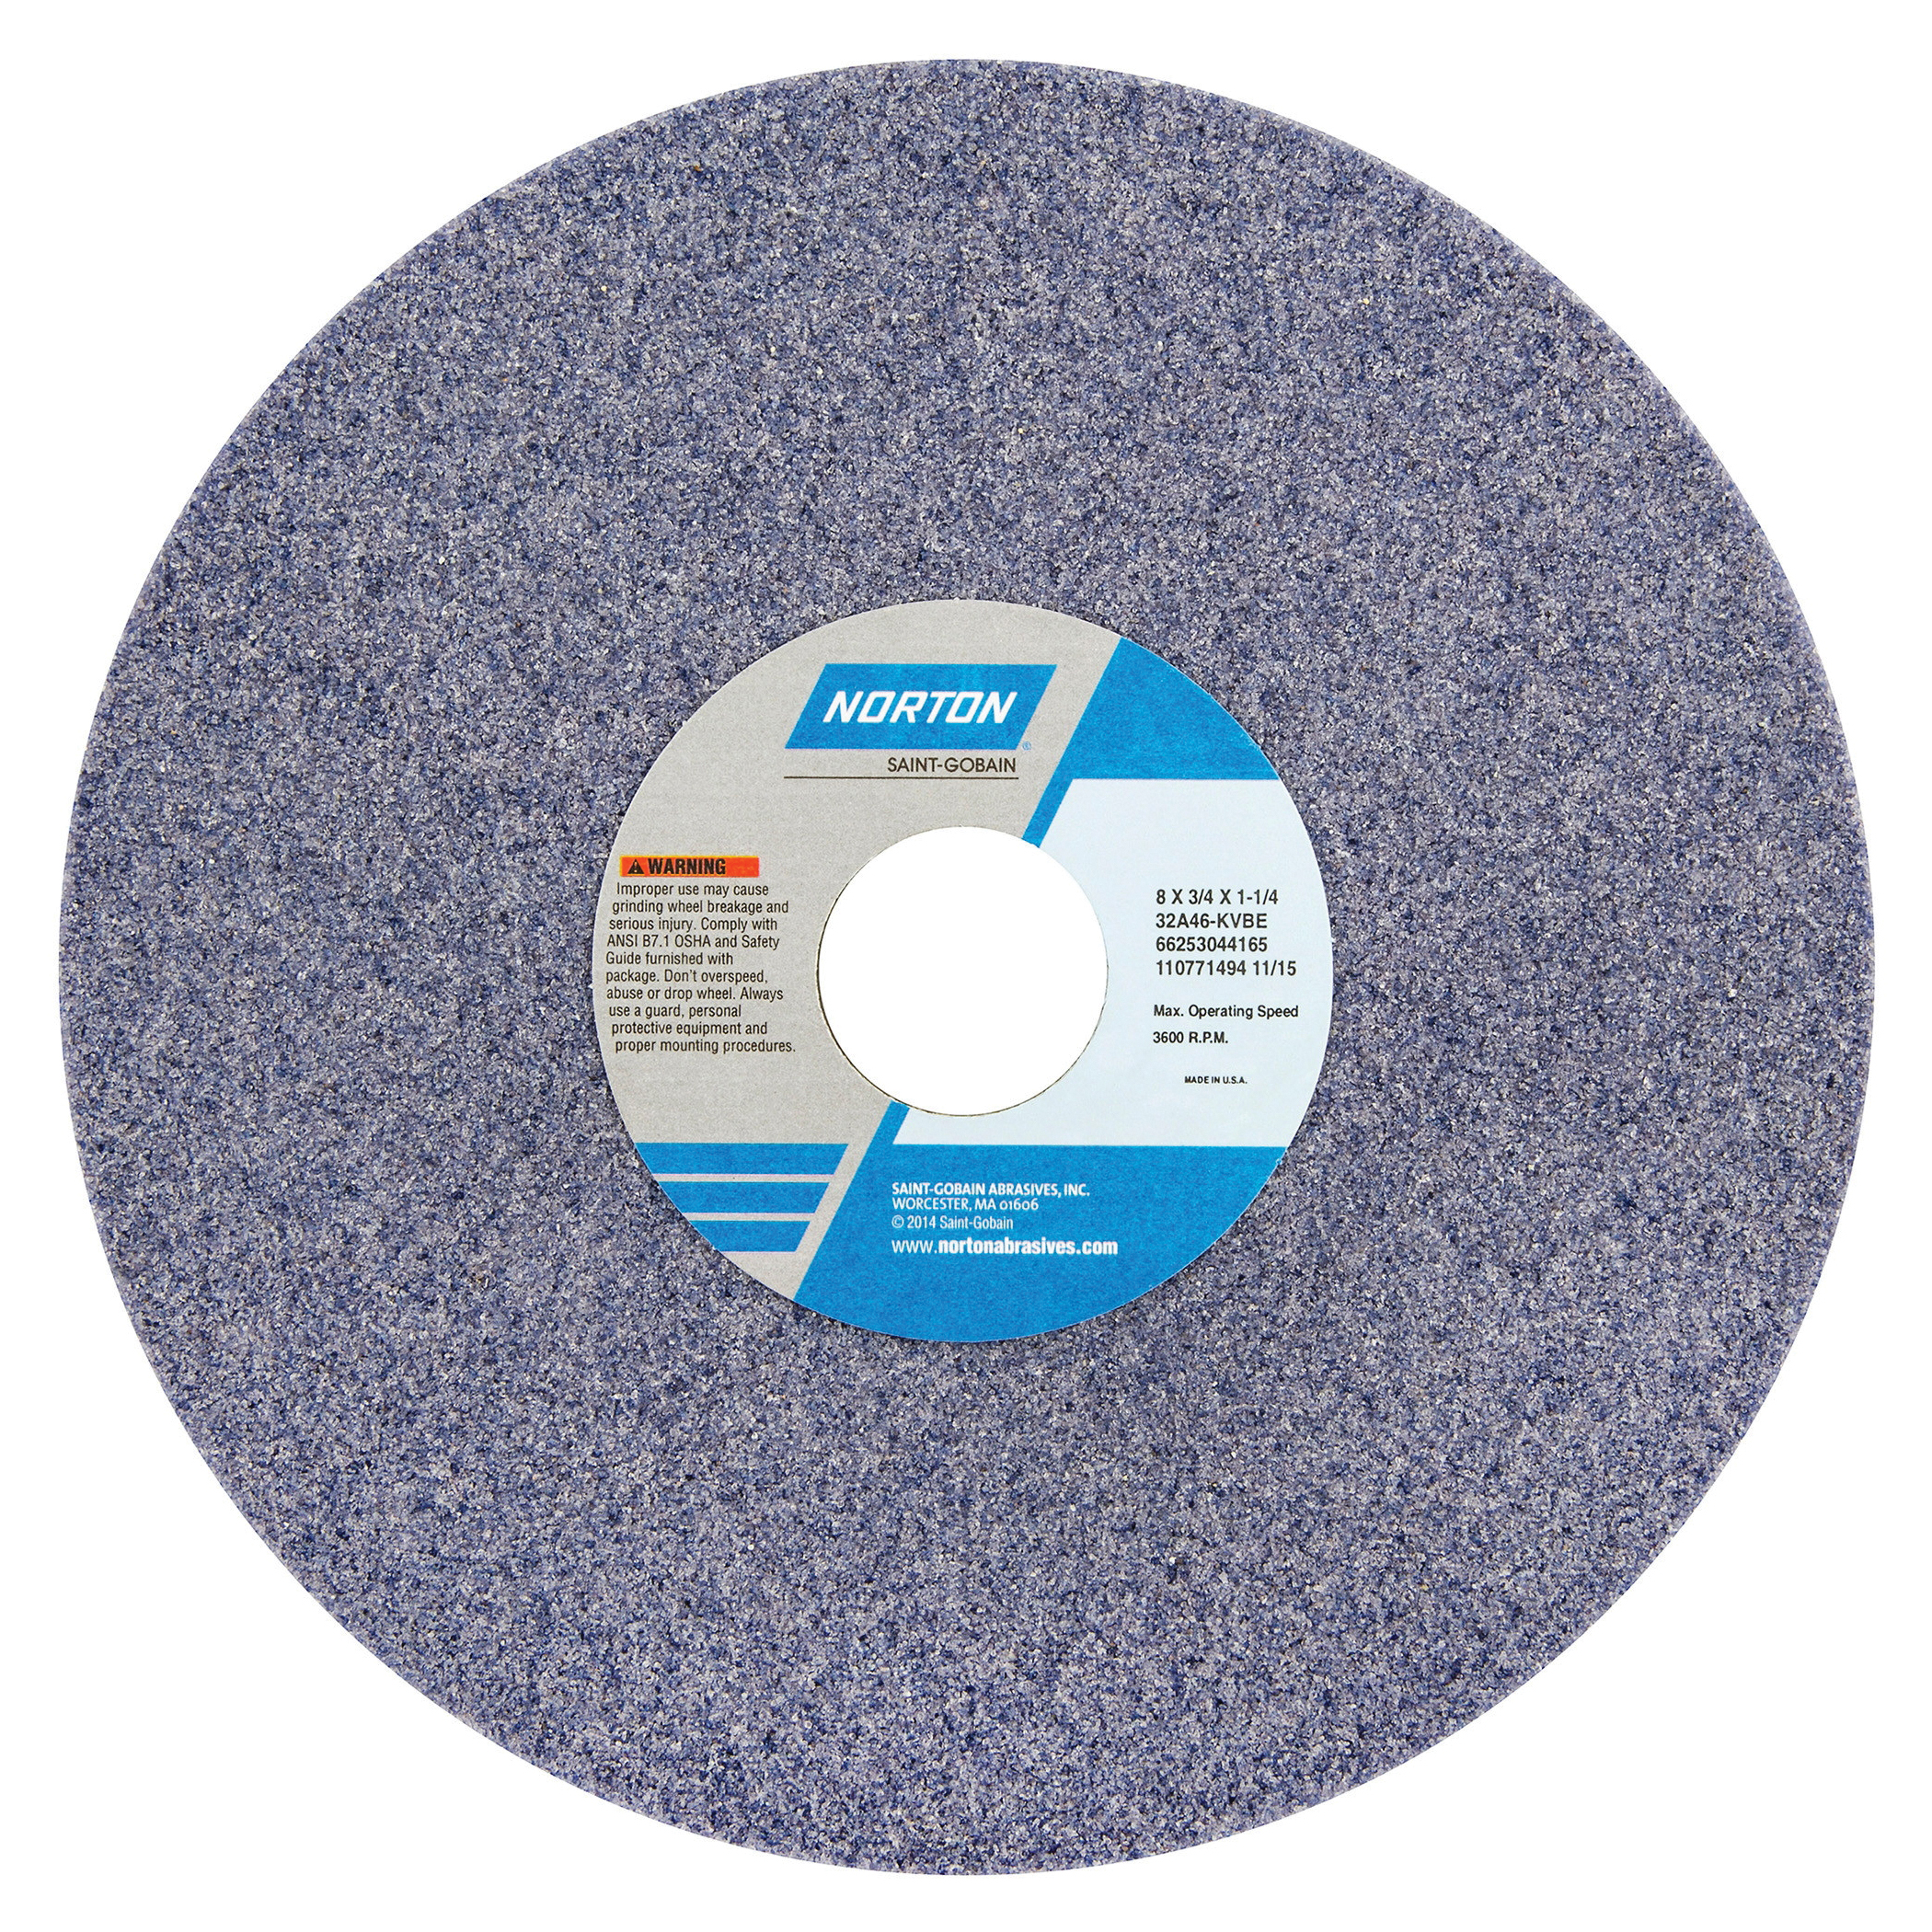 Norton® 66253044171 32A Straight Toolroom Wheel, 8 in Dia x 3/4 in THK, 1-1/4 in Center Hole, 60 Grit, Aluminum Oxide Abrasive